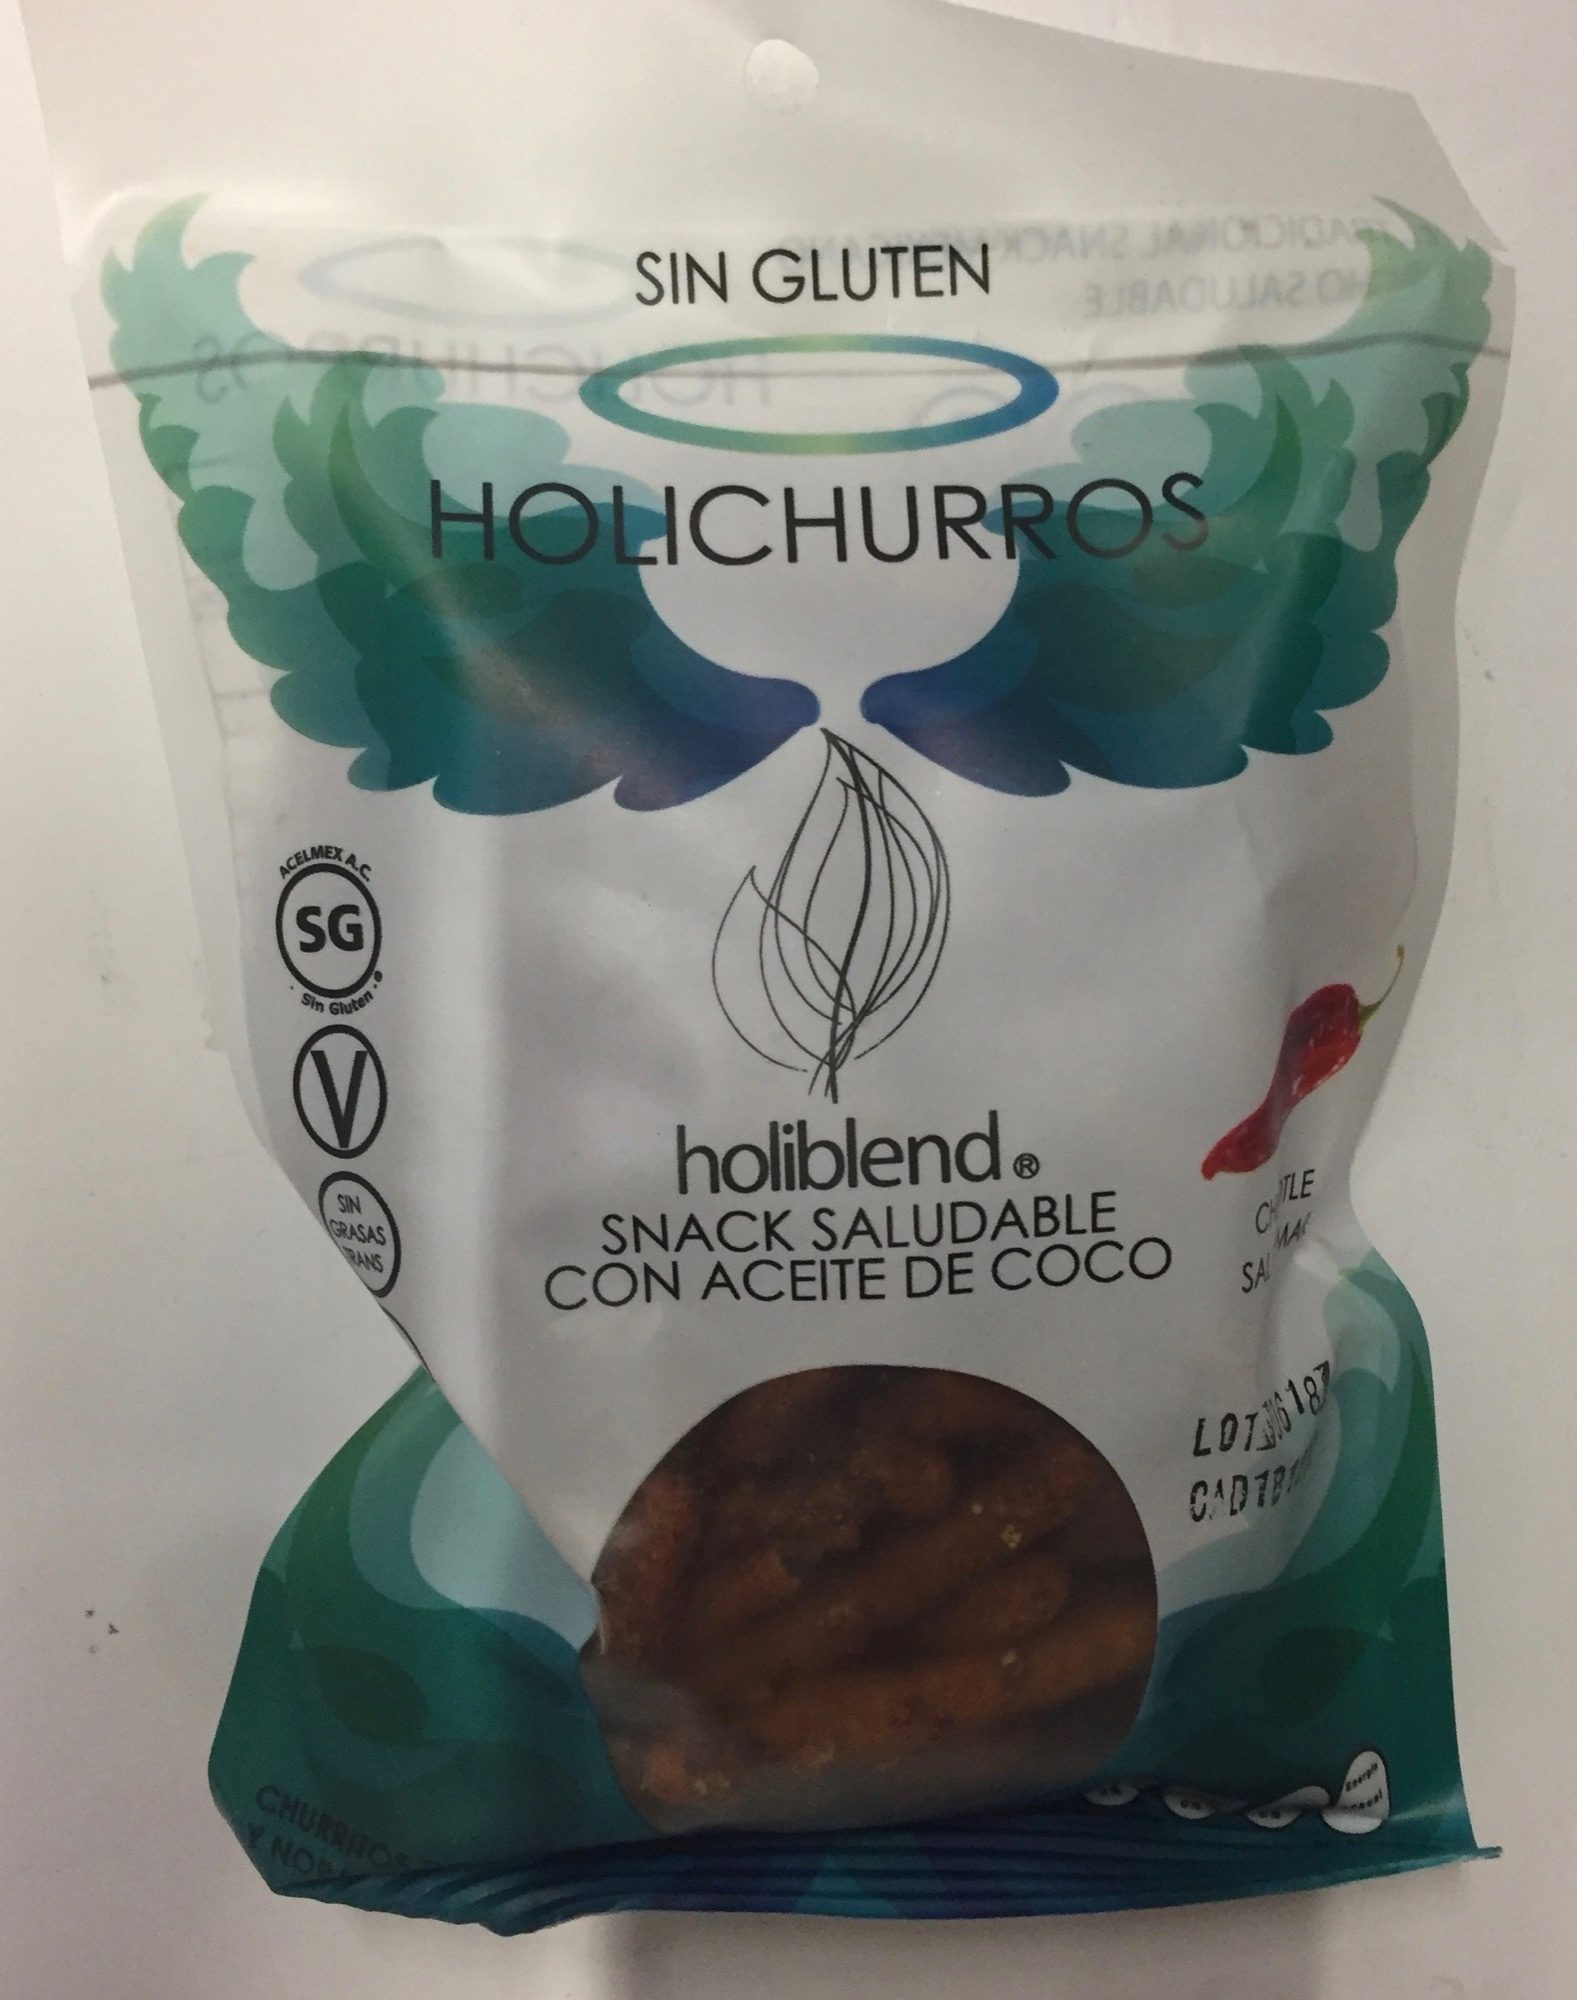 Holichurros holiblend - Producto - es